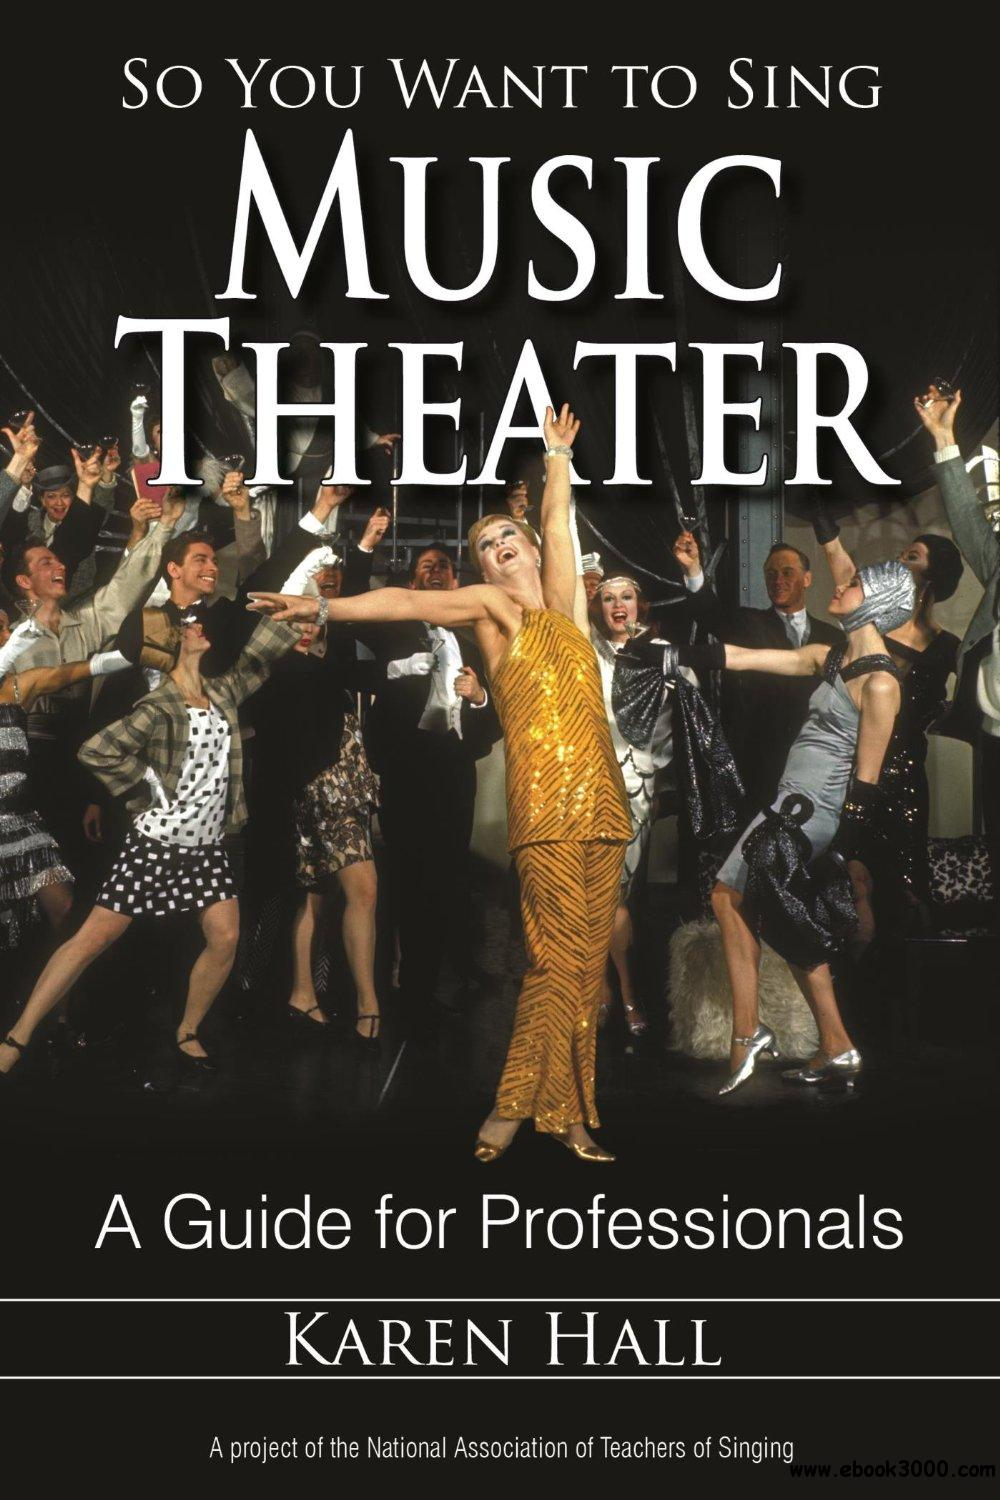 So You Want to Sing Music Theater: A Guide for Professionals download dree